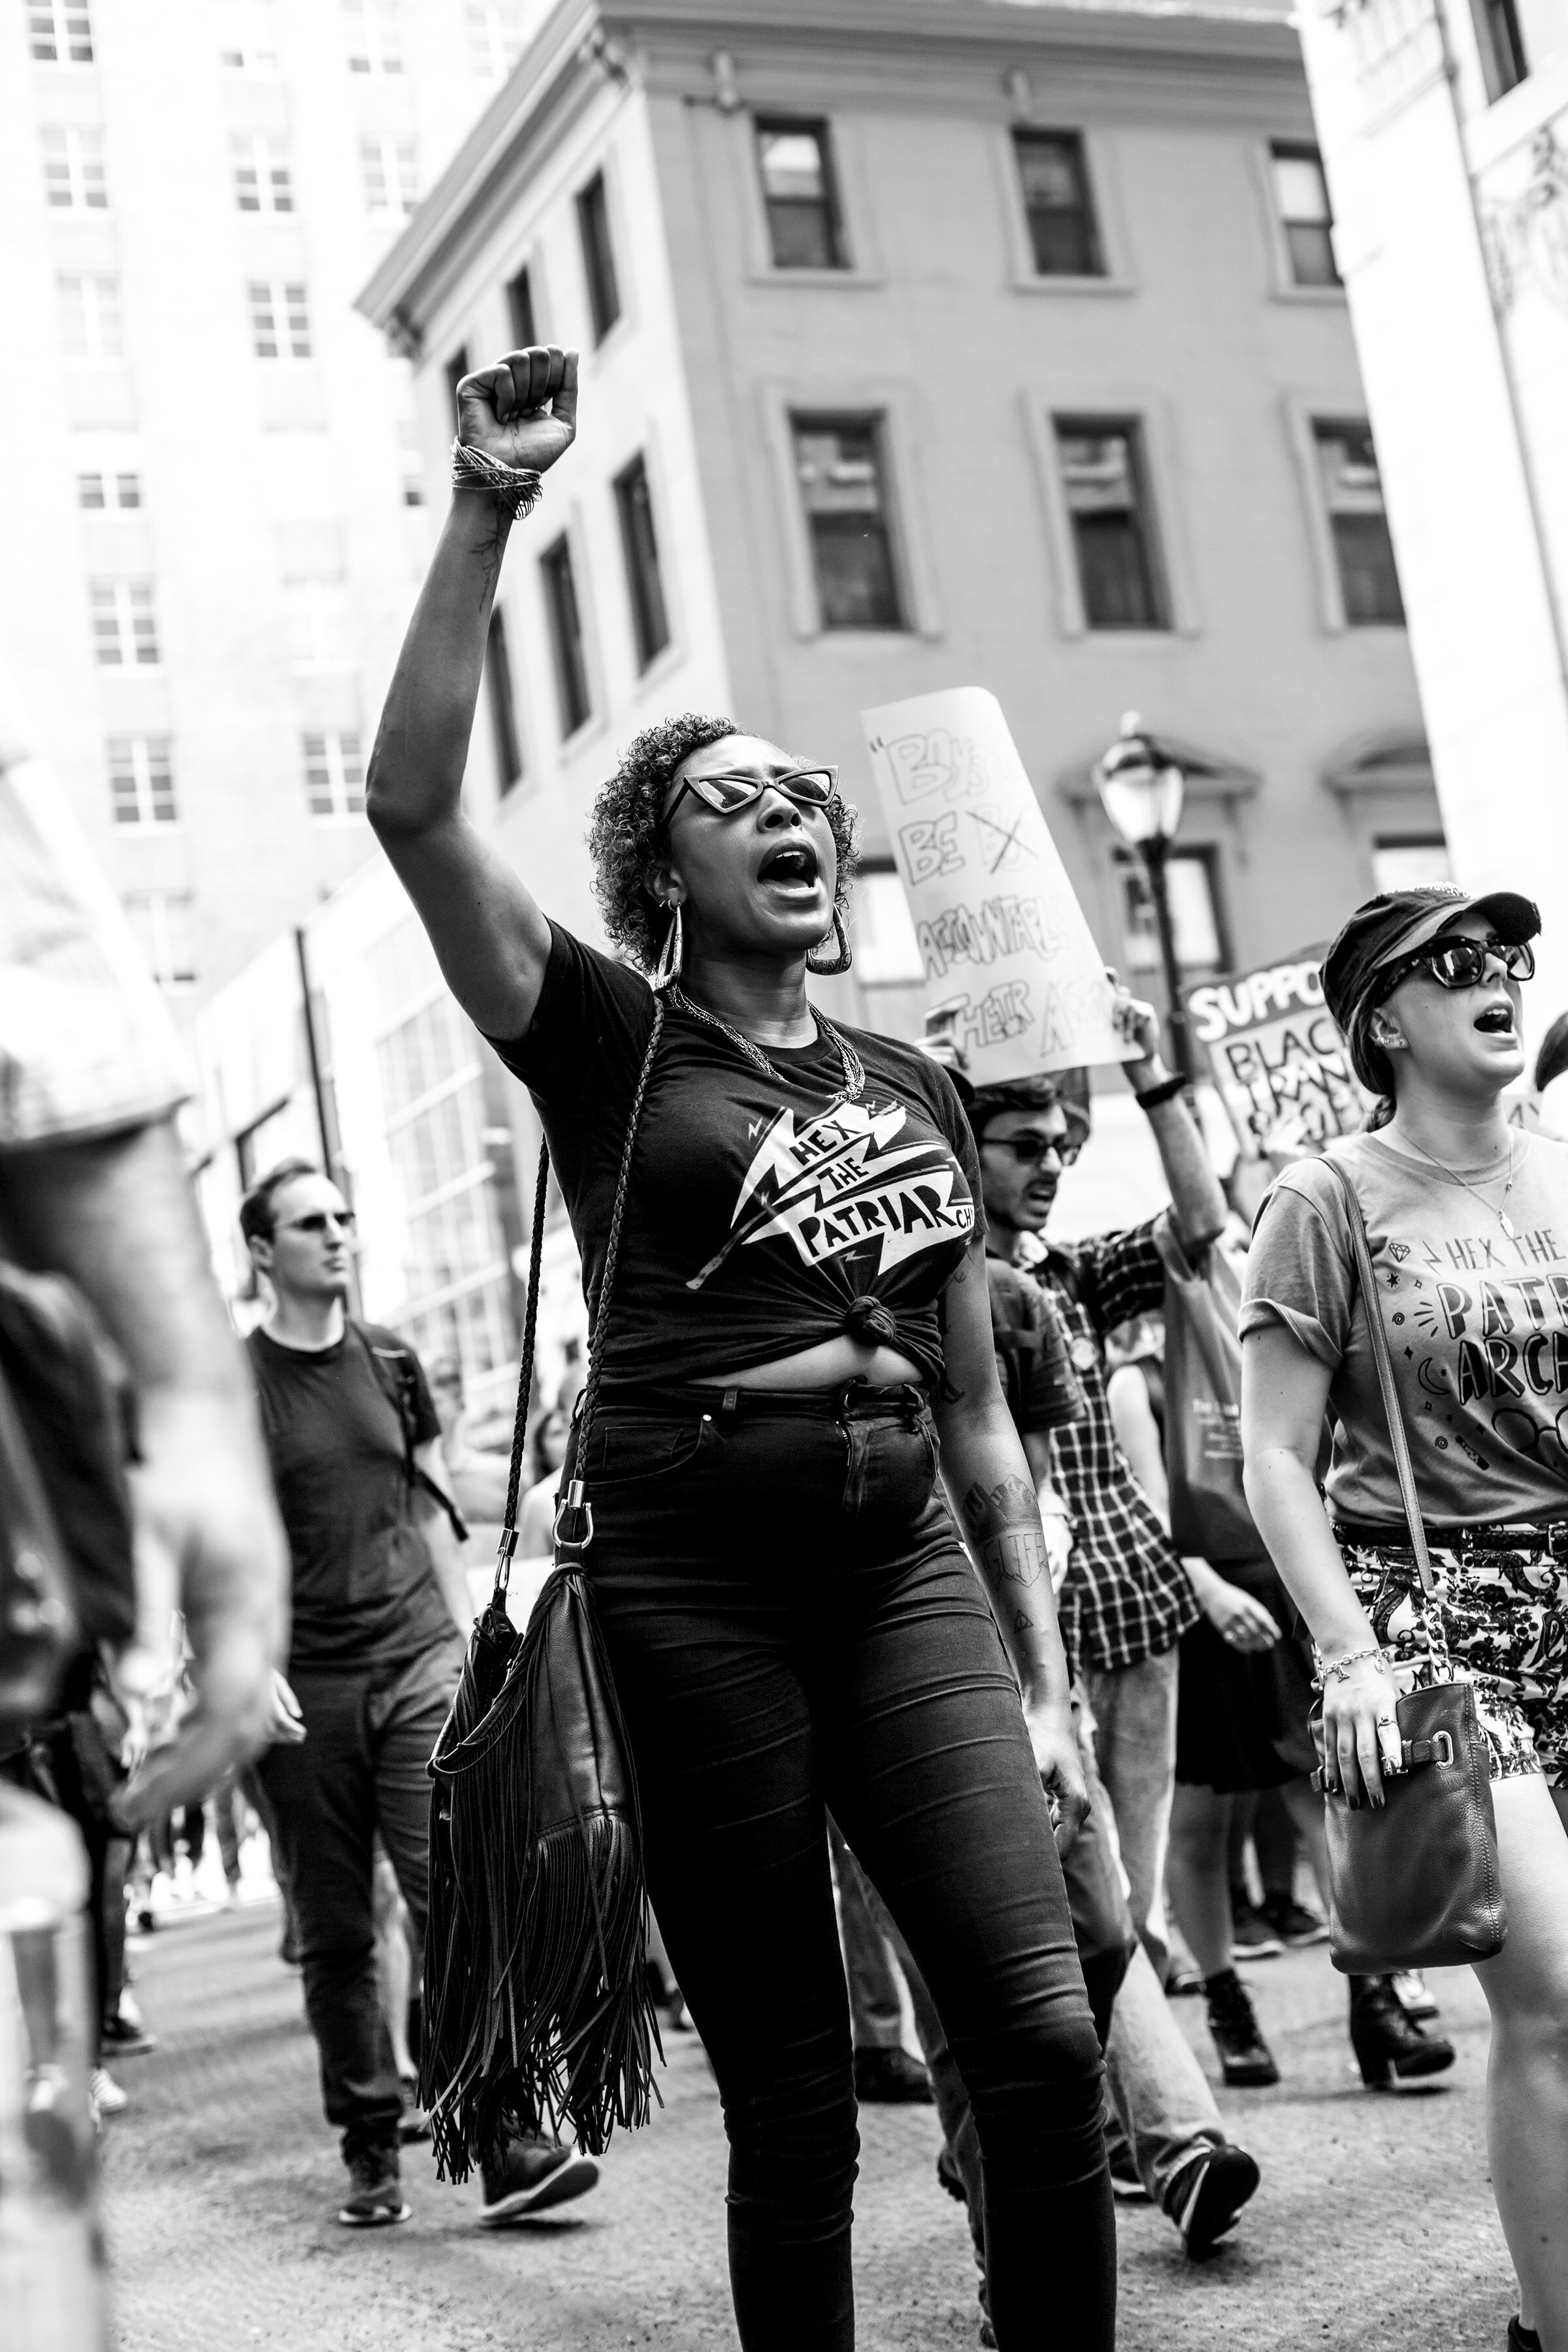 MarchToEndRapeCulture_2019_MikeArrison_BW_092919_0083.jpg